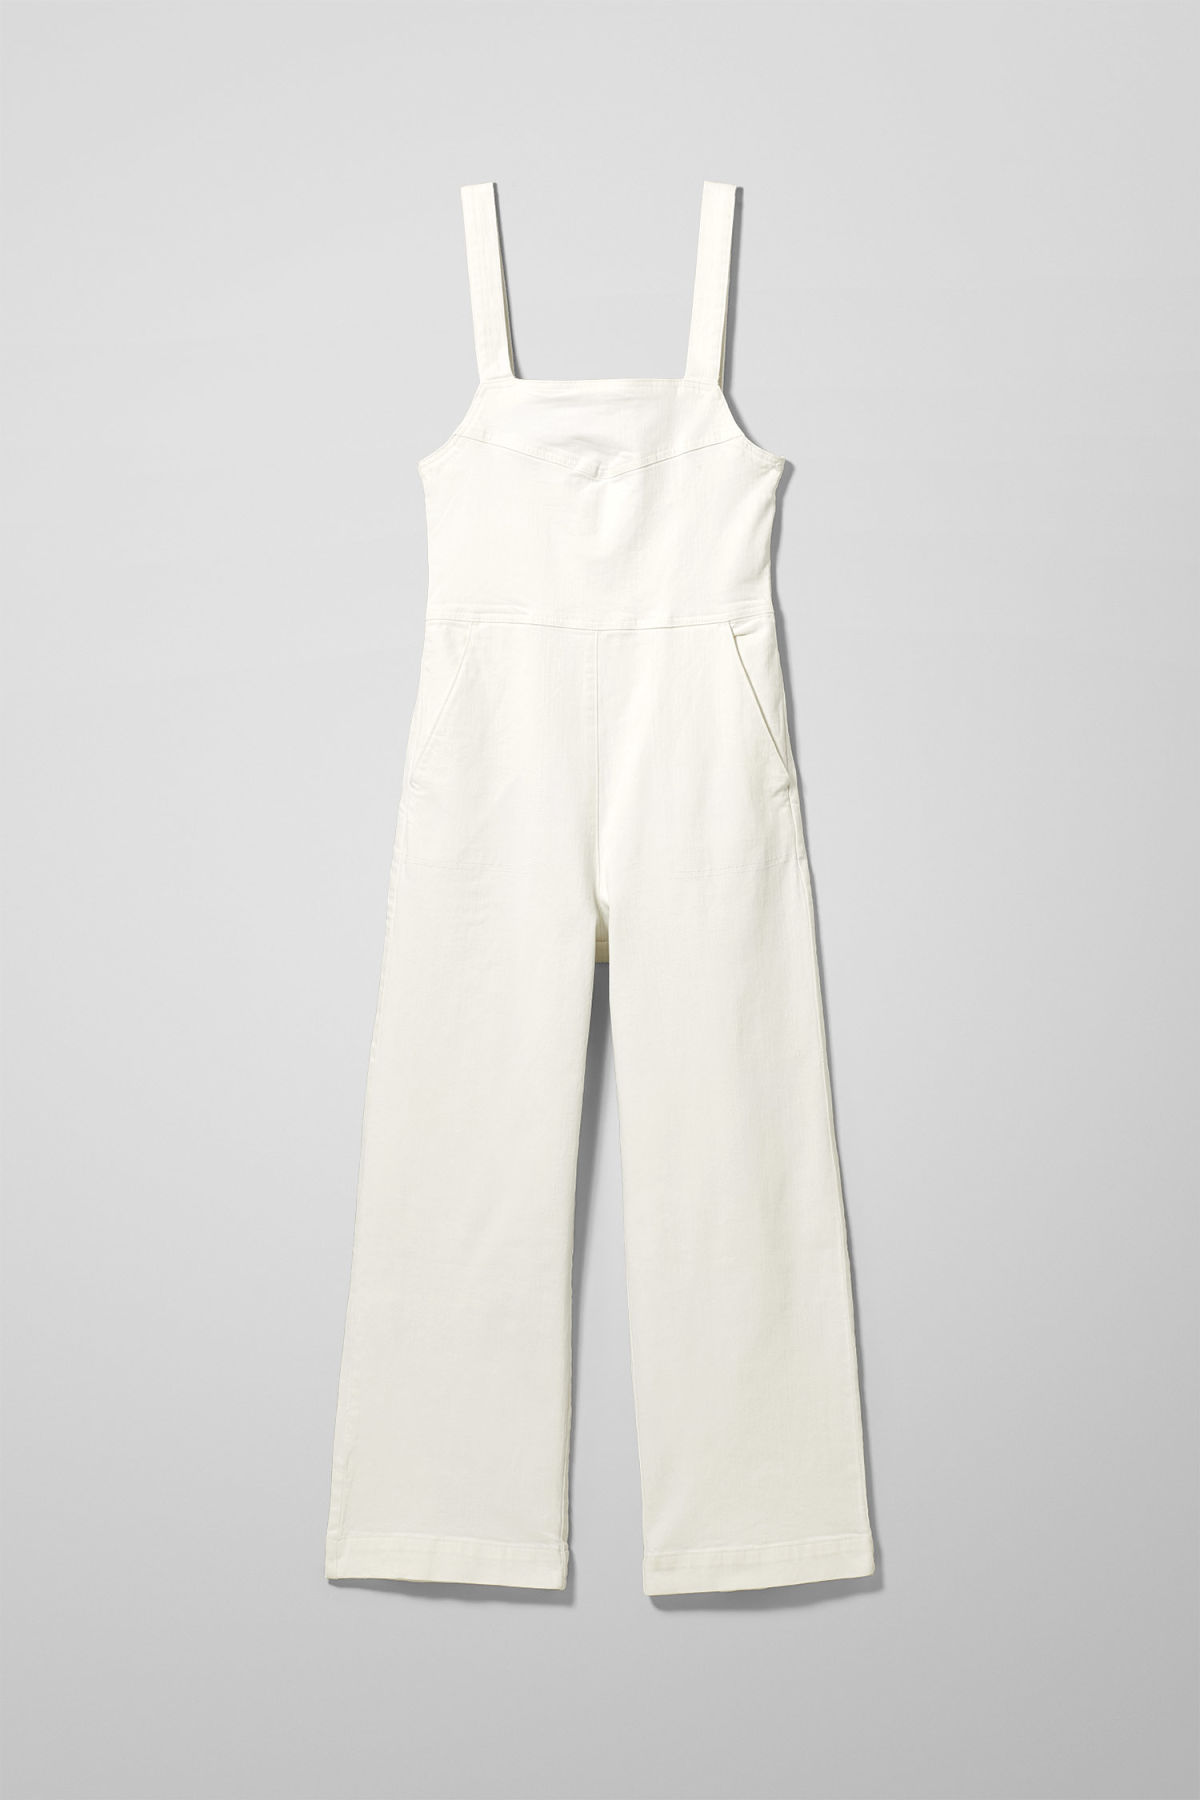 popular stores where to buy 2019 hot sale Junip White Denim Jumpsuit - White - Dresses & Jumpsuits - Weekday